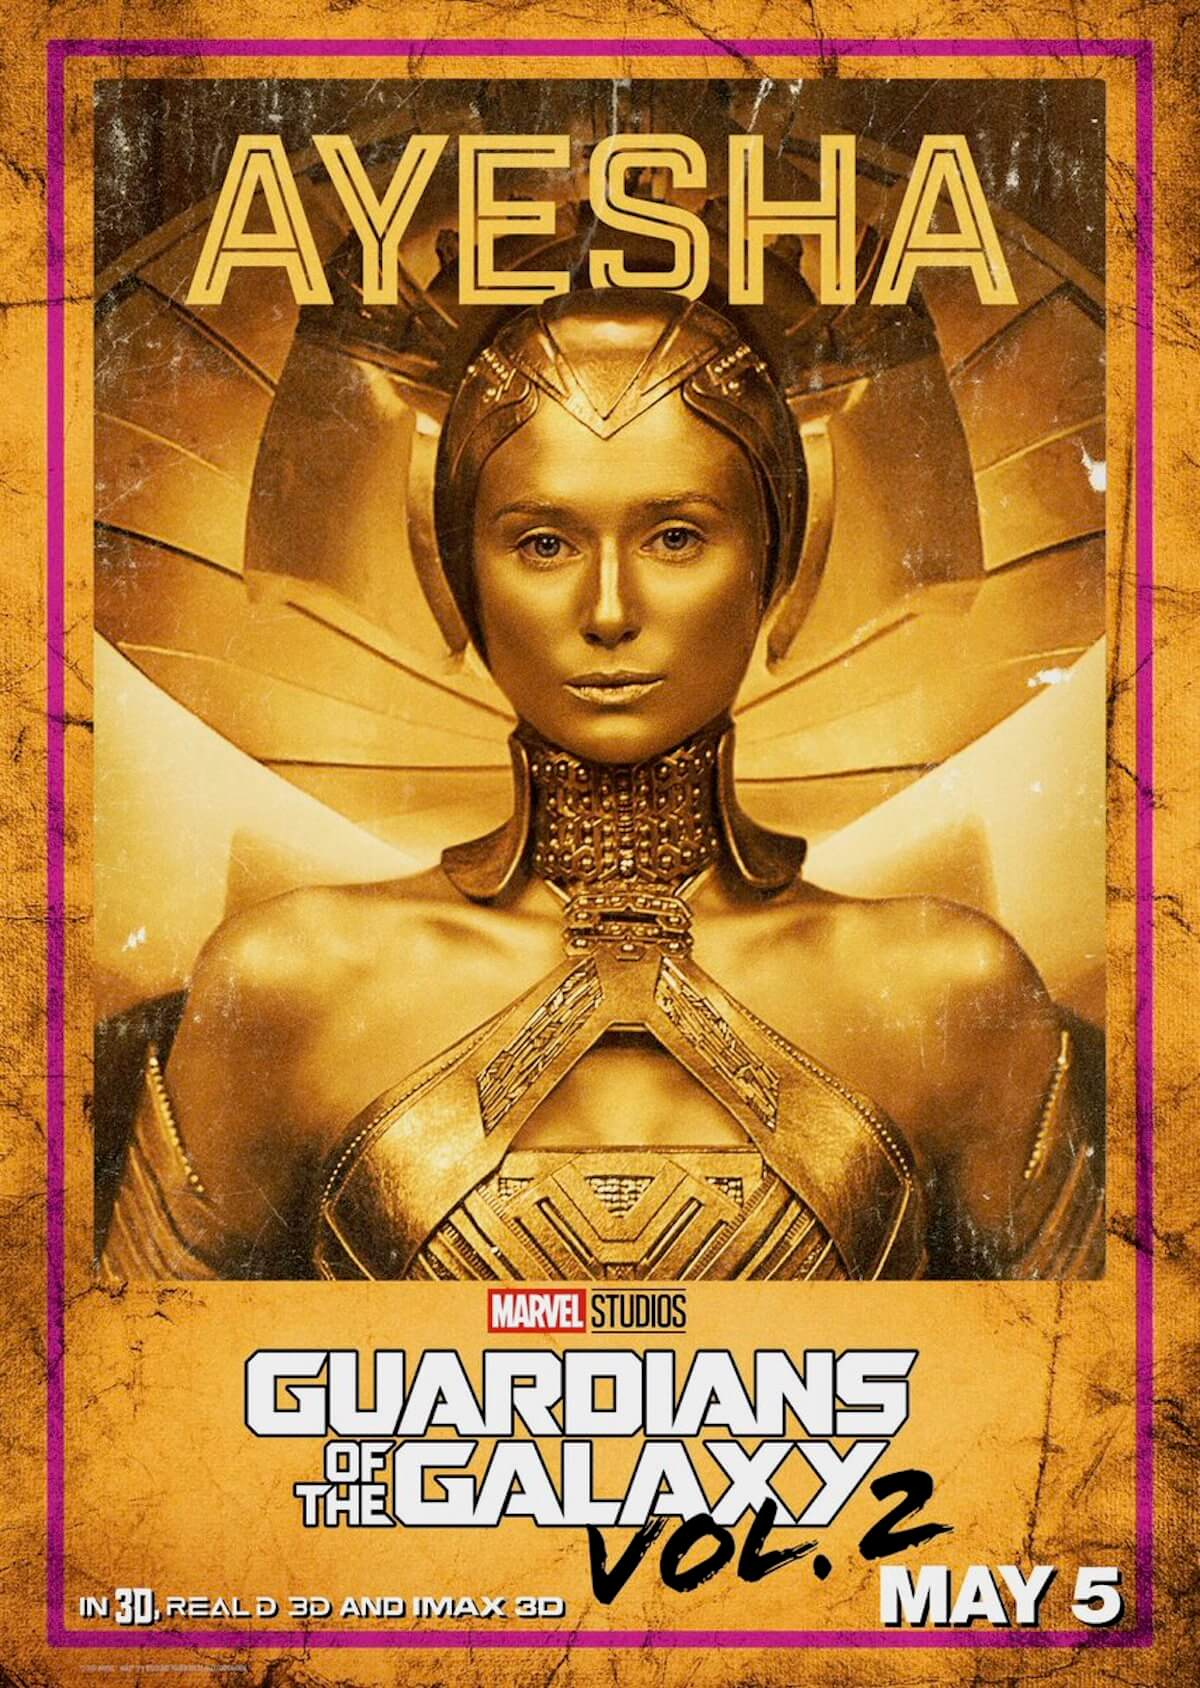 Guardians of the galaxy 2 poster ayesha elizabeth debicki